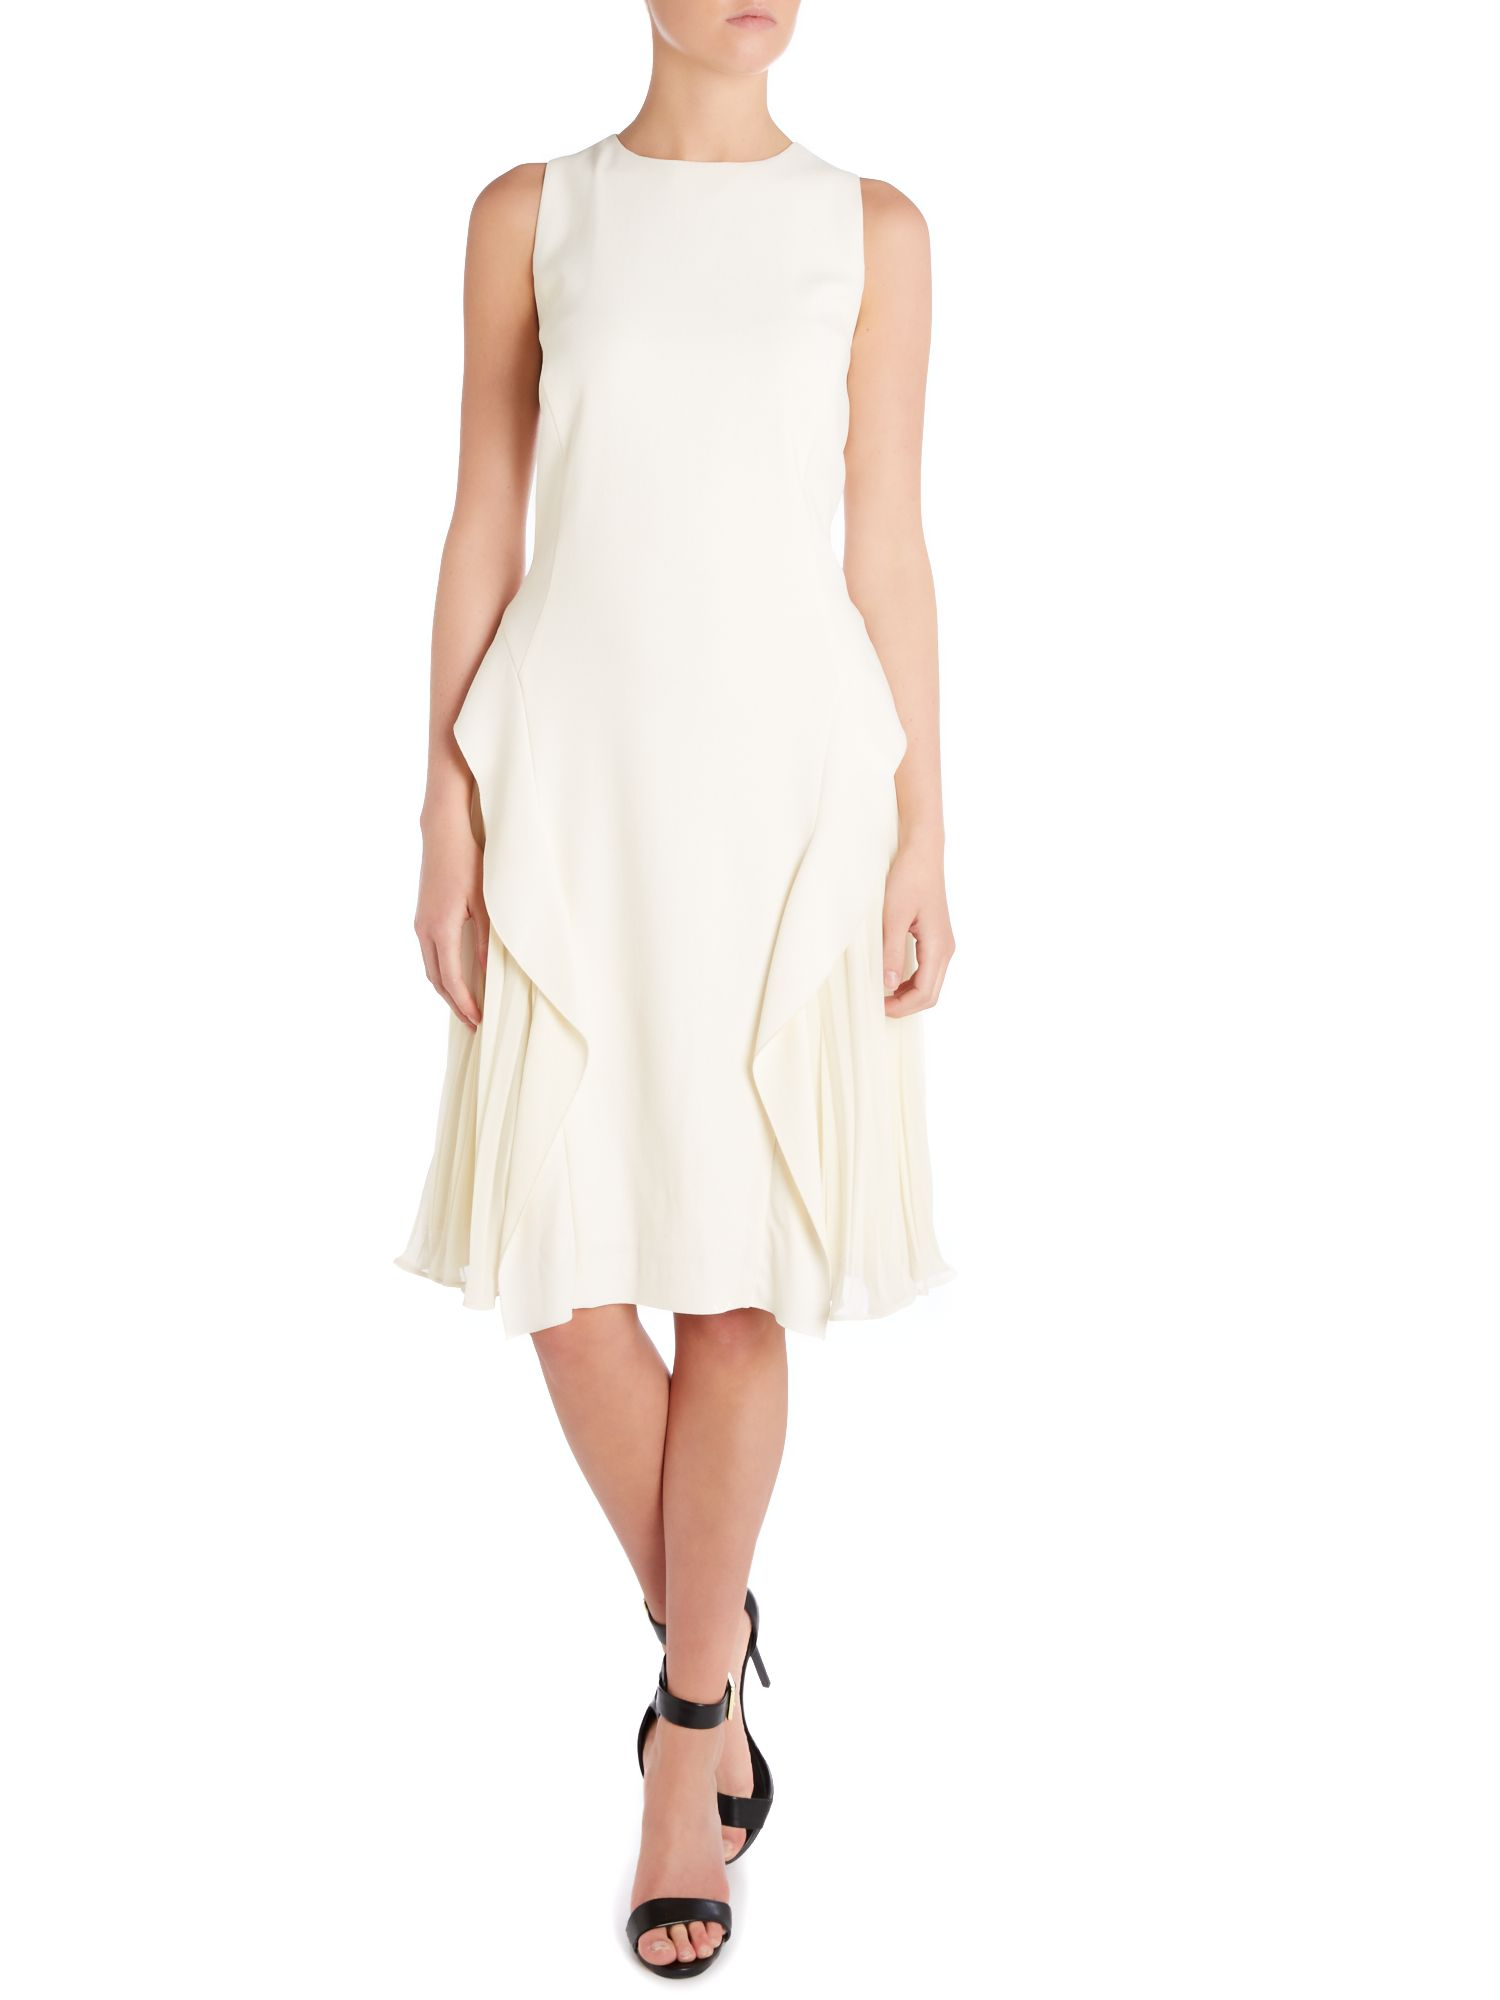 Sleeveless pleat dress with side panels